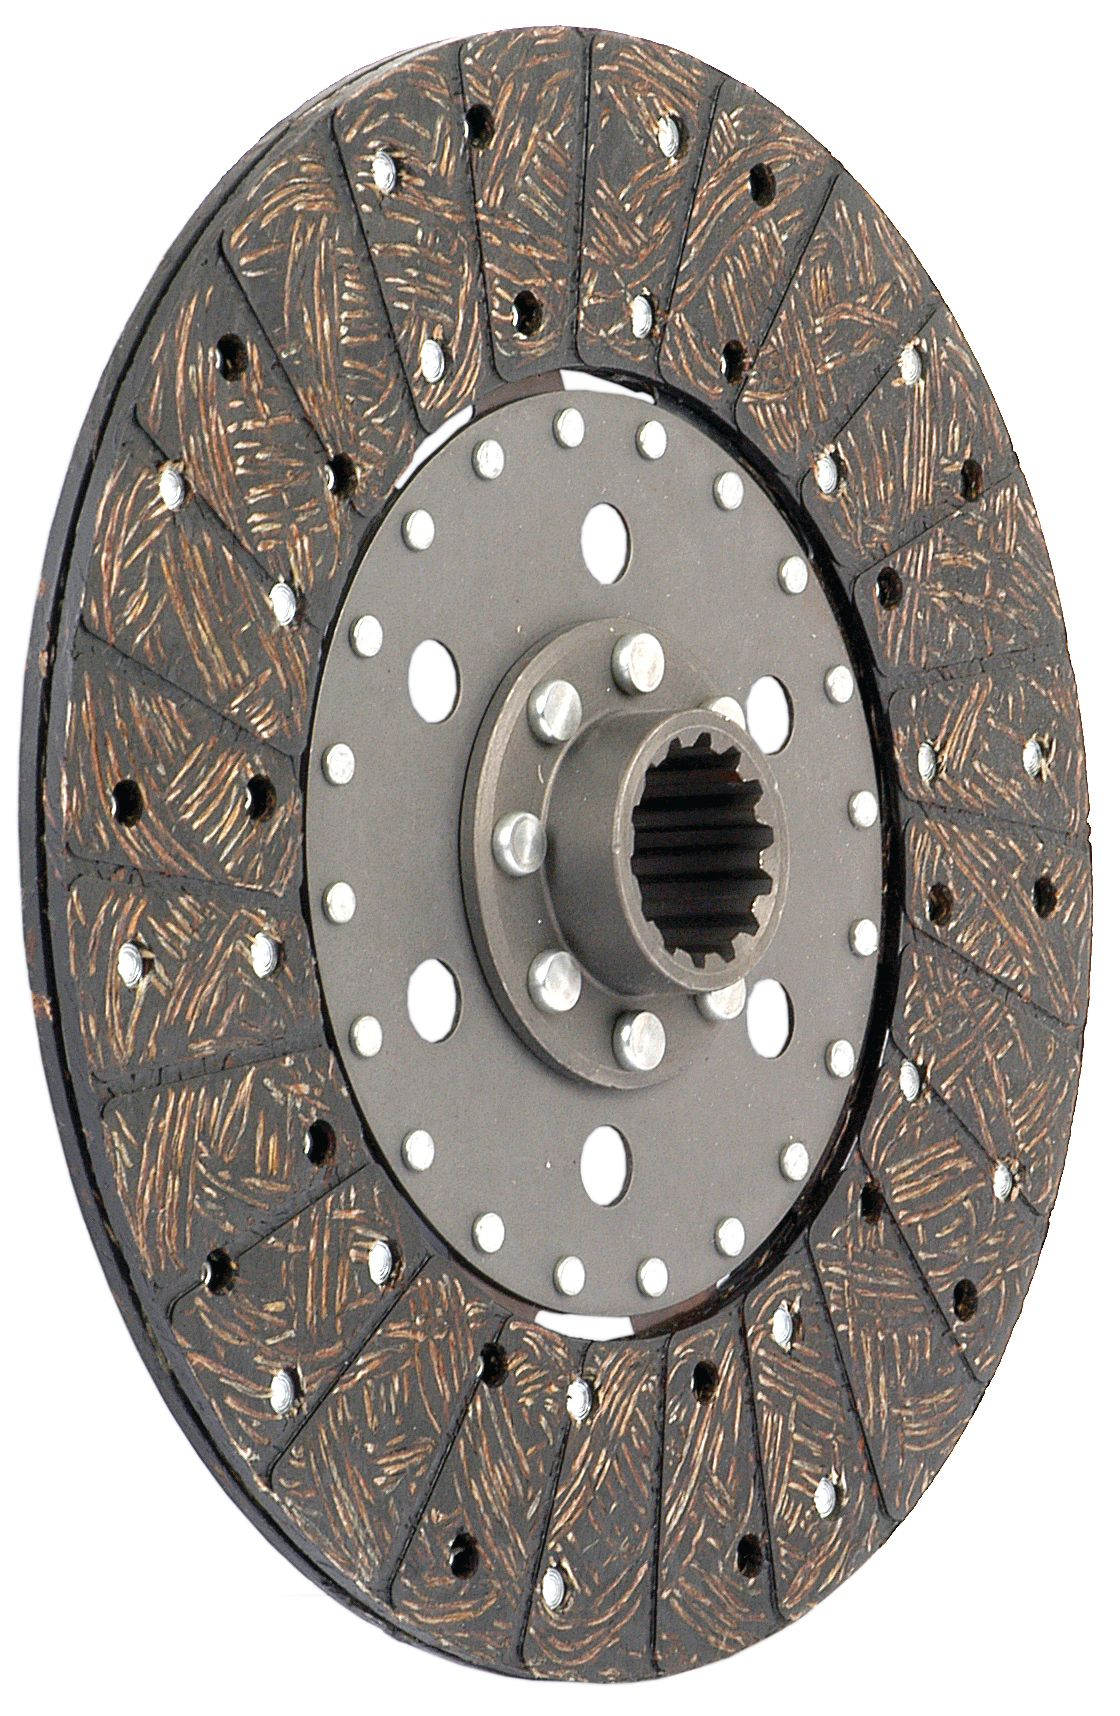 WHITE/OLIVER CLUTCH PLATE 280MM 62185